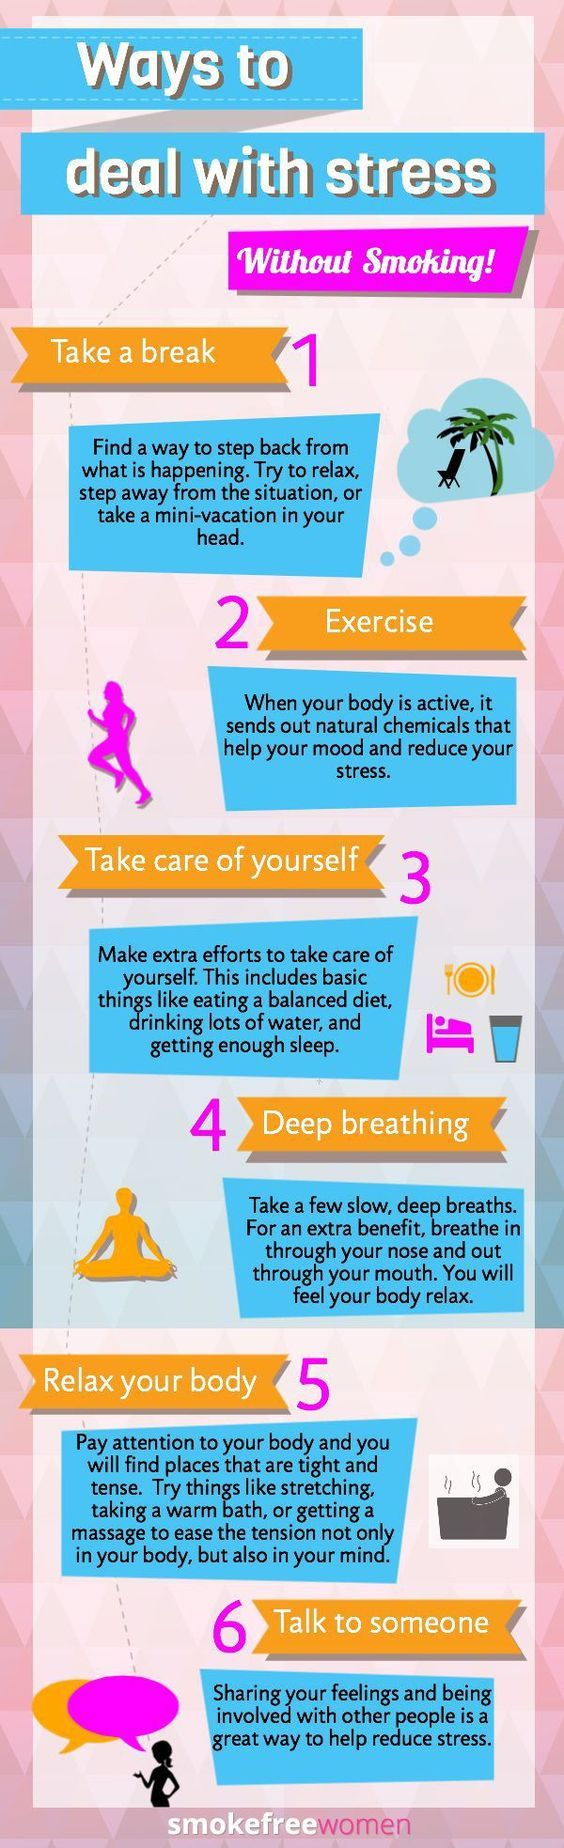 How to deal with stress without smoking...